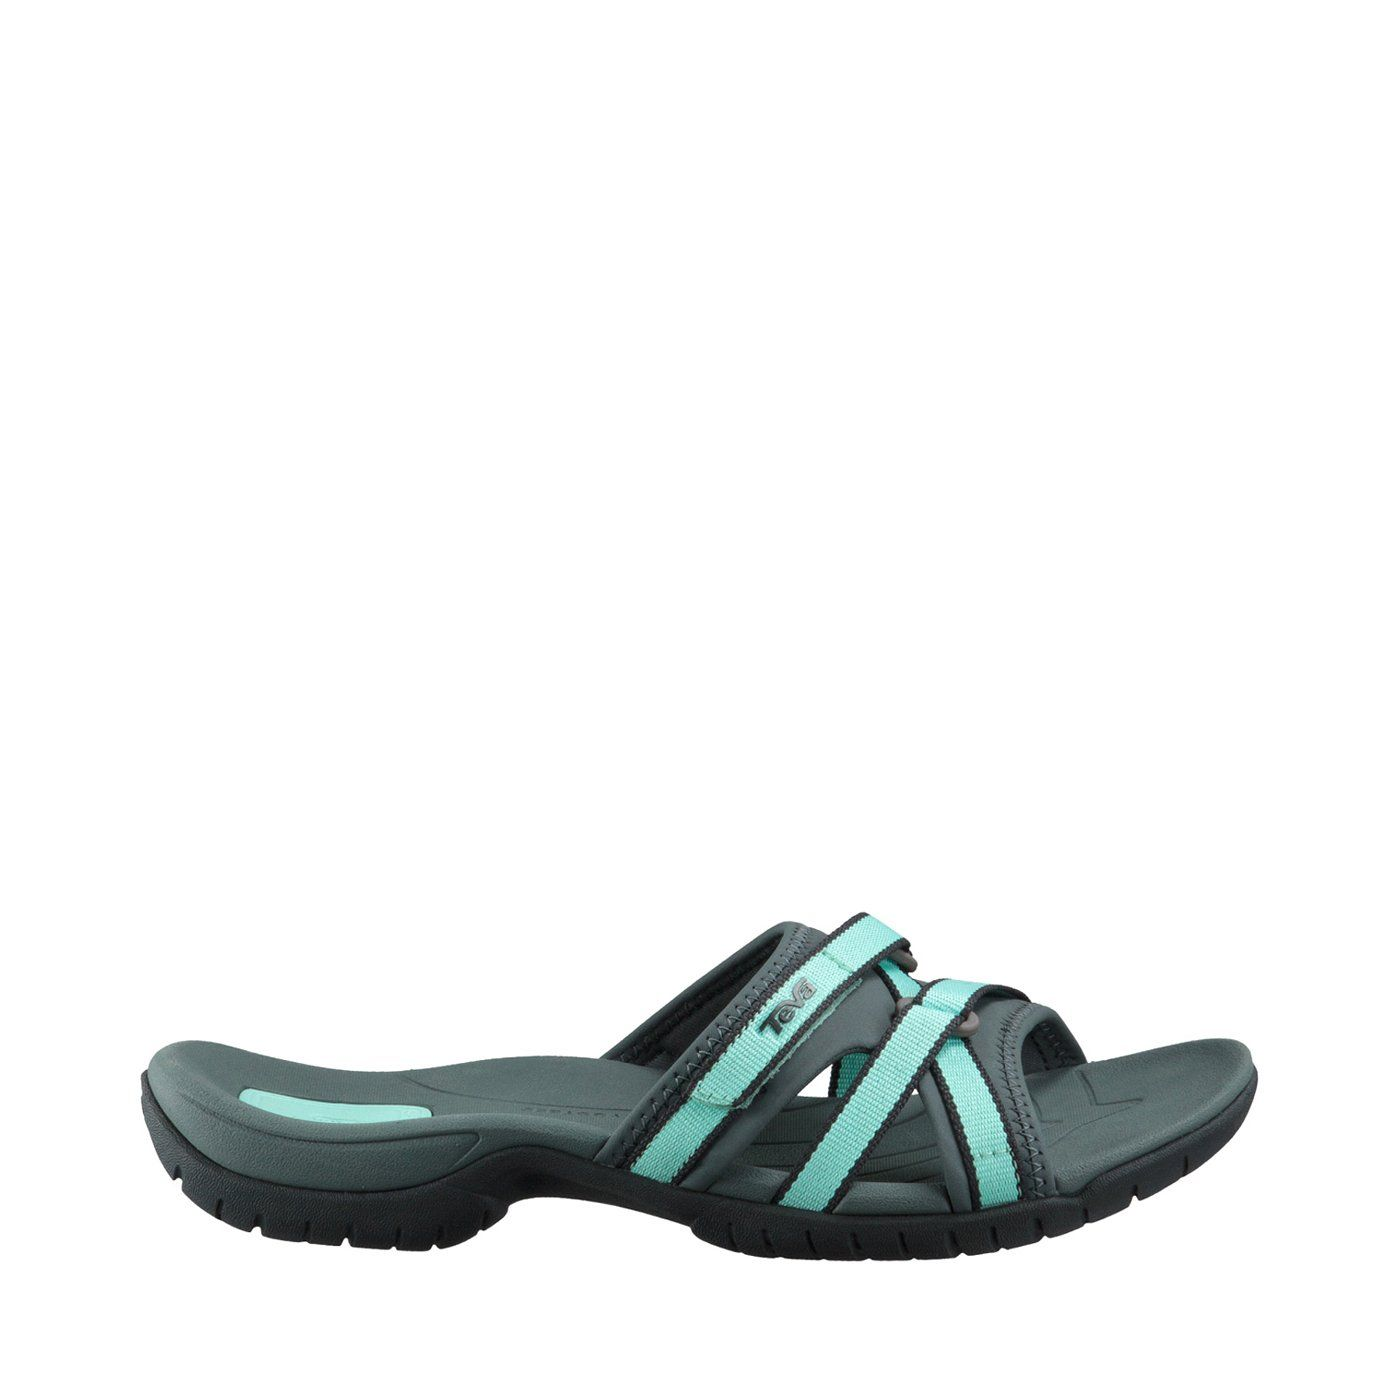 Sporty sandal featuring hook-and-loop webbing straps with stretchy slide strap underlay